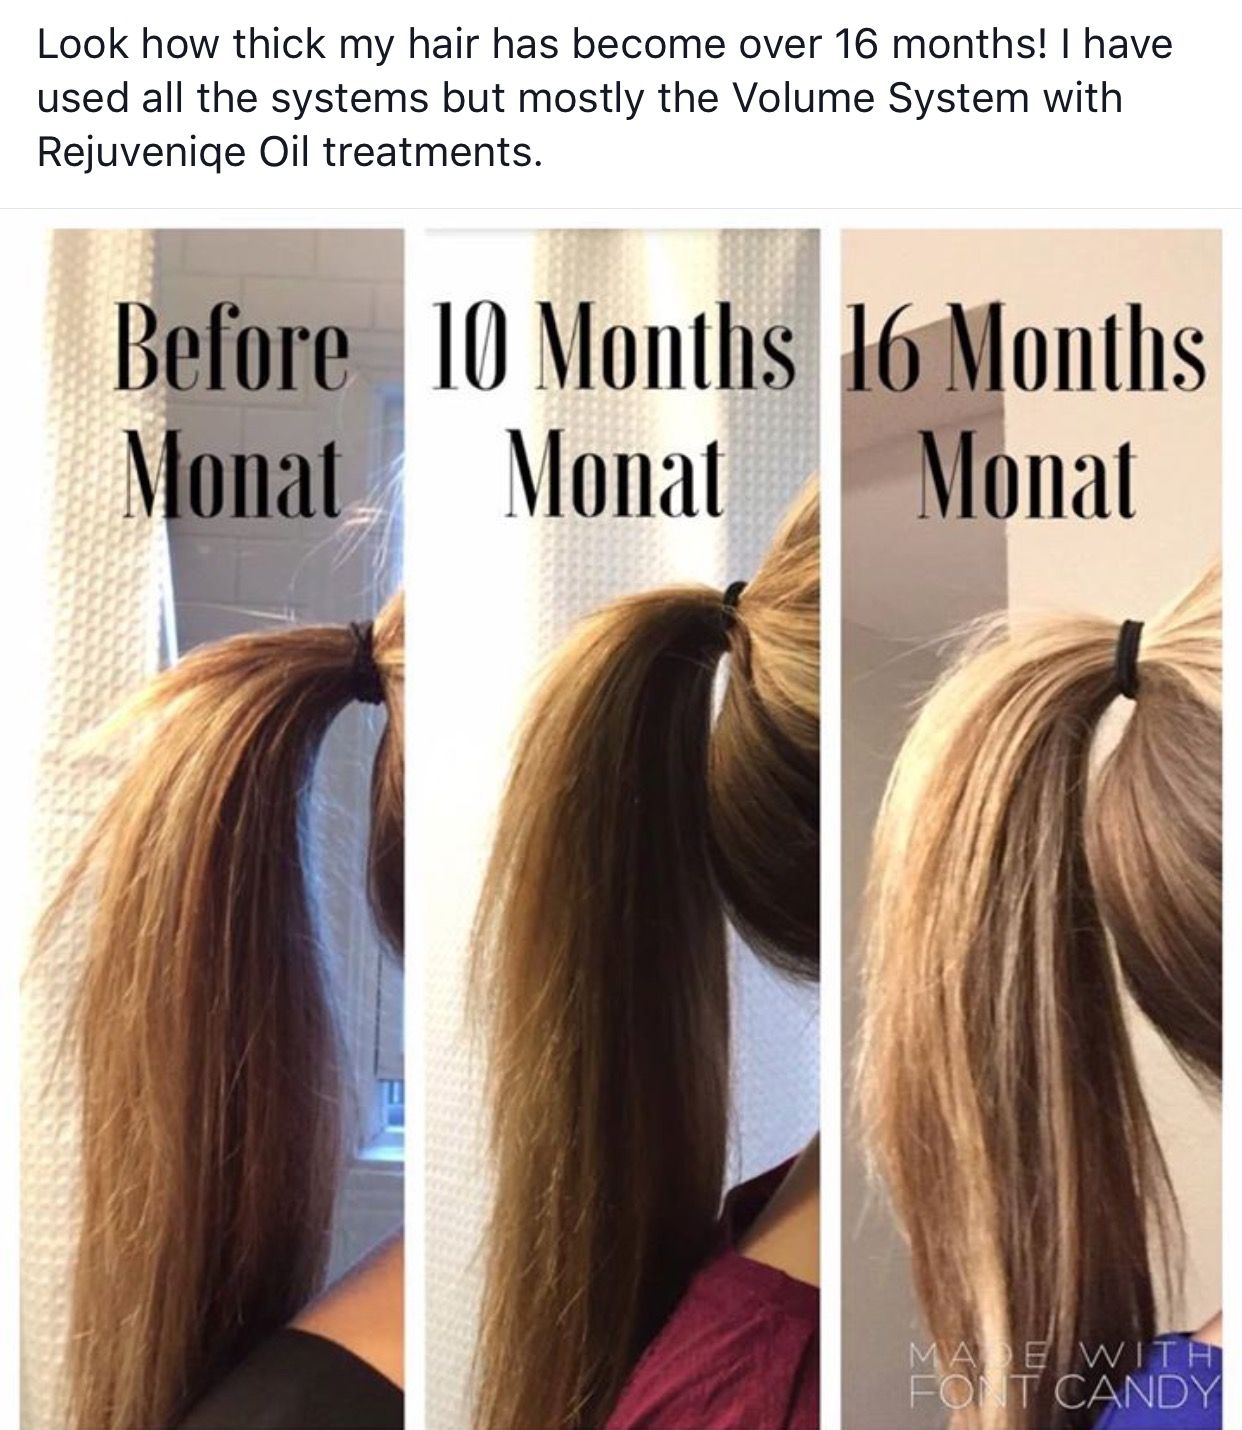 Want thicker hair??? Monat is amazing. All natural and